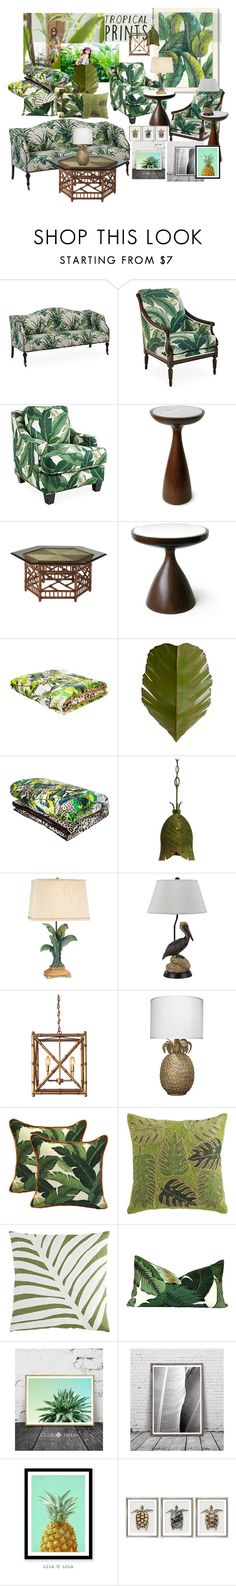 """""""Tropical Prints"""" by marionmeyer ❤ liked on Polyvore featuring interior, interiors, interior design, home, home decor, interior decorating, Americanflat, Michael Thomas Collection, Society Social and Jonathan Adler"""